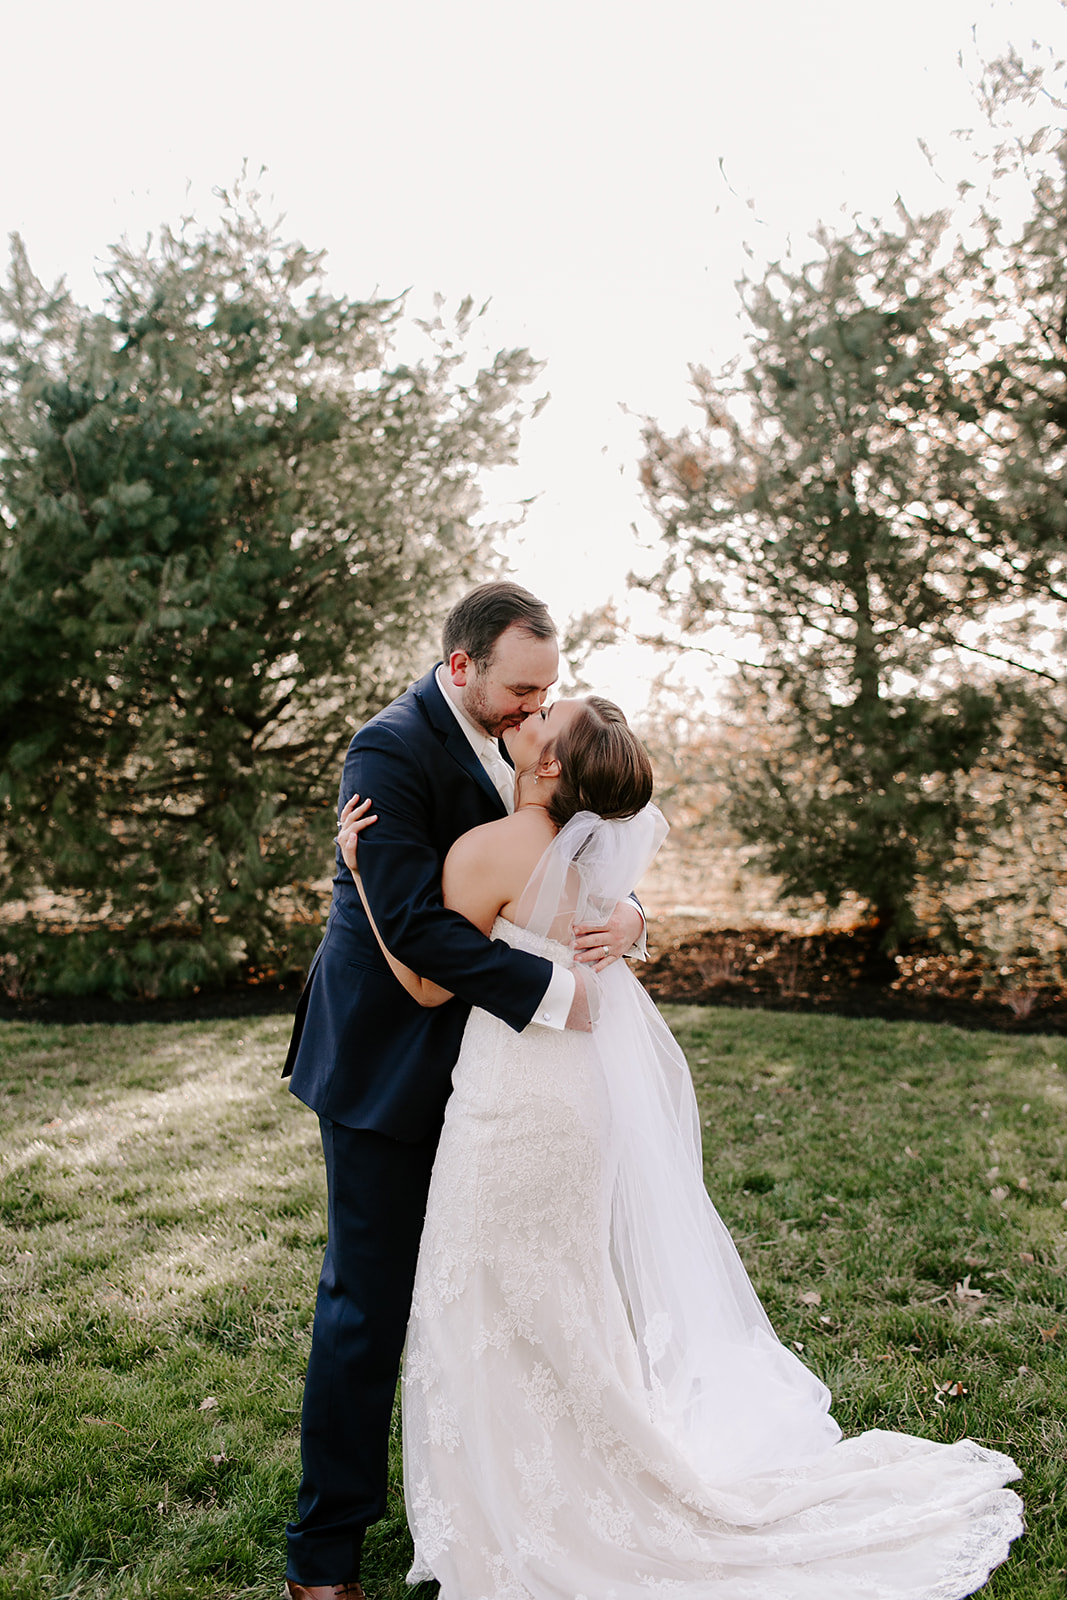 Lauren_and_Andrew_Mustard_Seed_Gardens_Noblesville_Indiana_by_Emily_Wehner_Photography-741.jpg